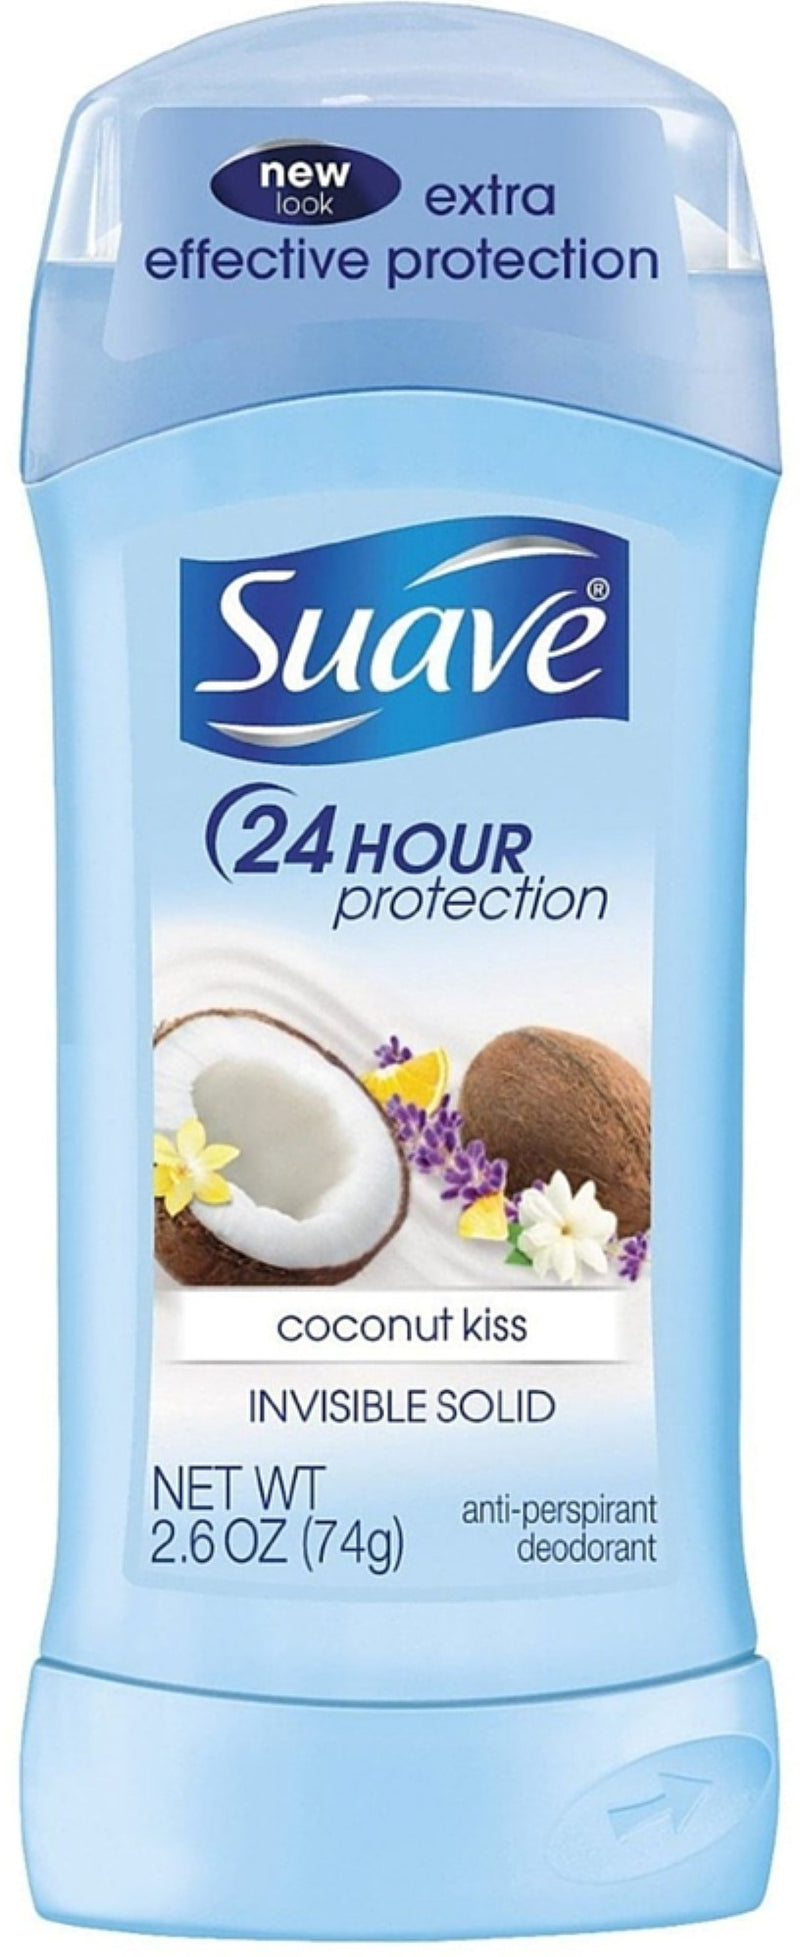 Suave Coconut Kiss 24 Hour Protection Invisible Solid Deodorant, 2.6 oz.